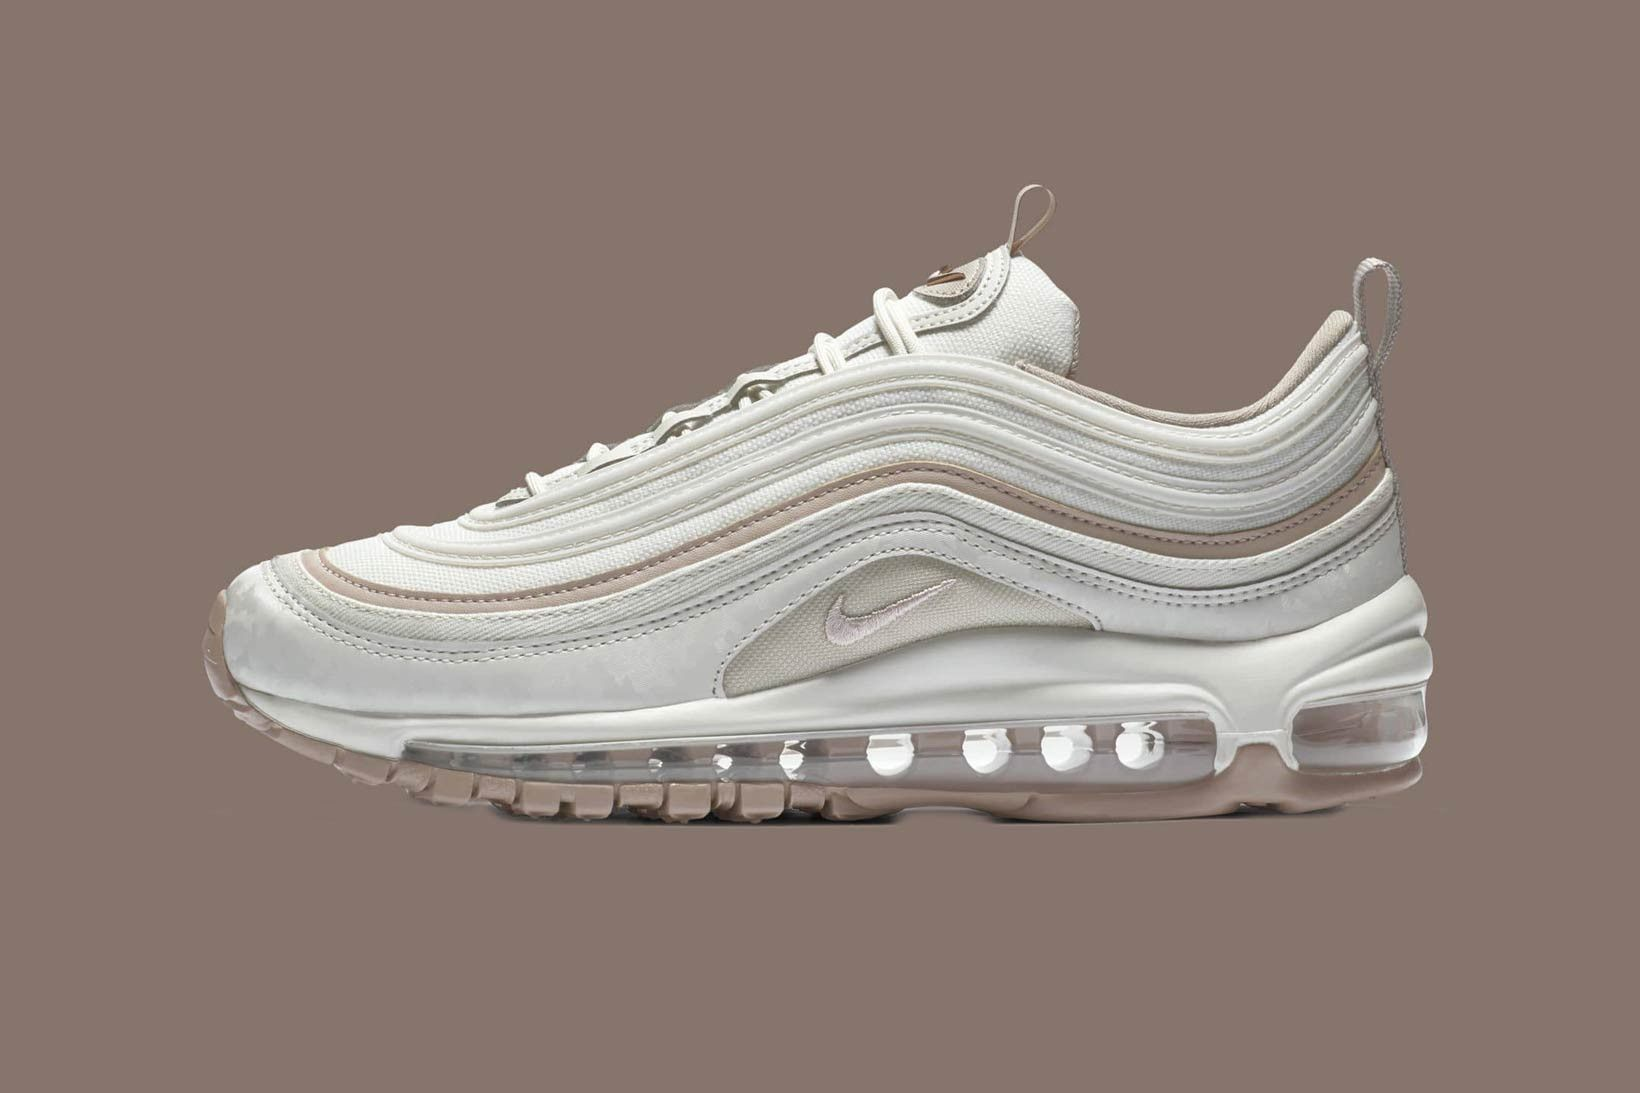 Nike's Air Max 97 Premium Arrives in Rose Gold